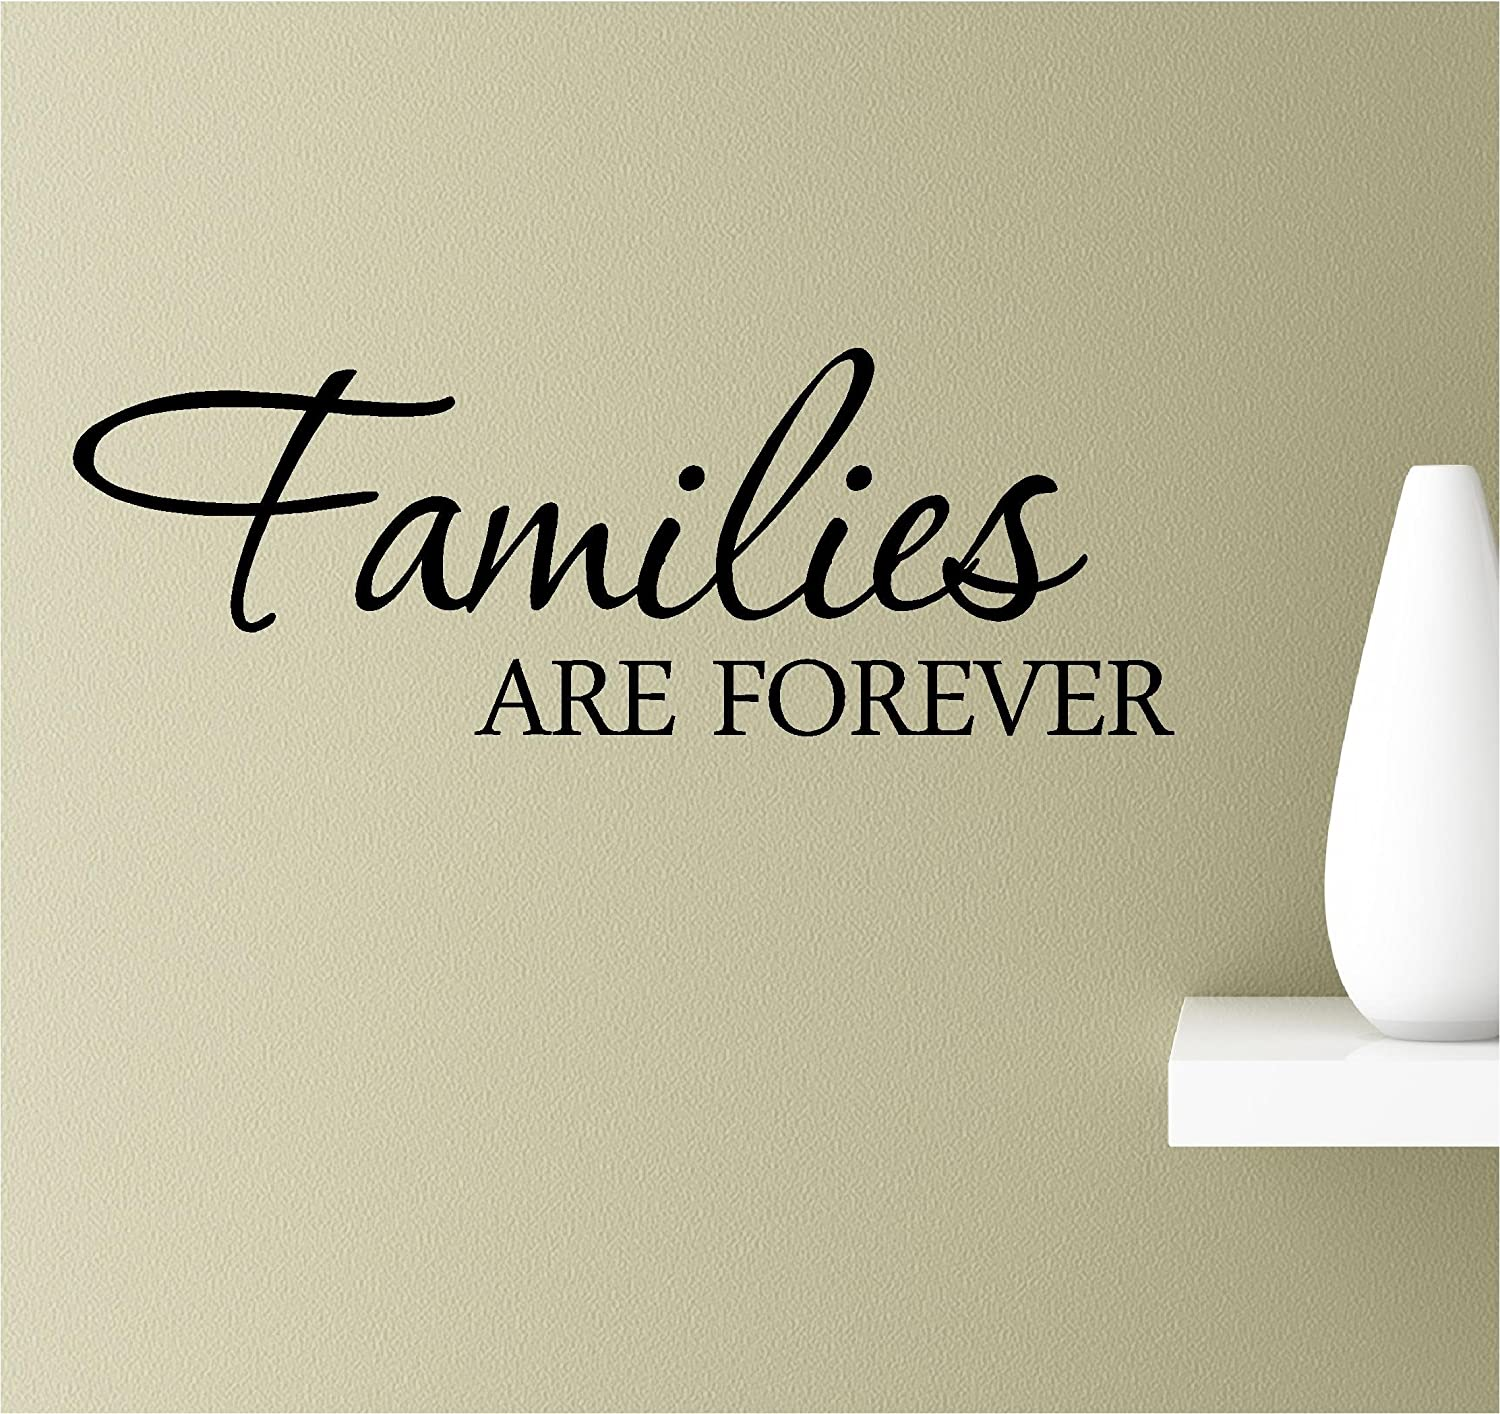 Southern Sticker Company Families are Forever Inspirational Wall Quotes Sayings Vinyl Decals Art (Black)